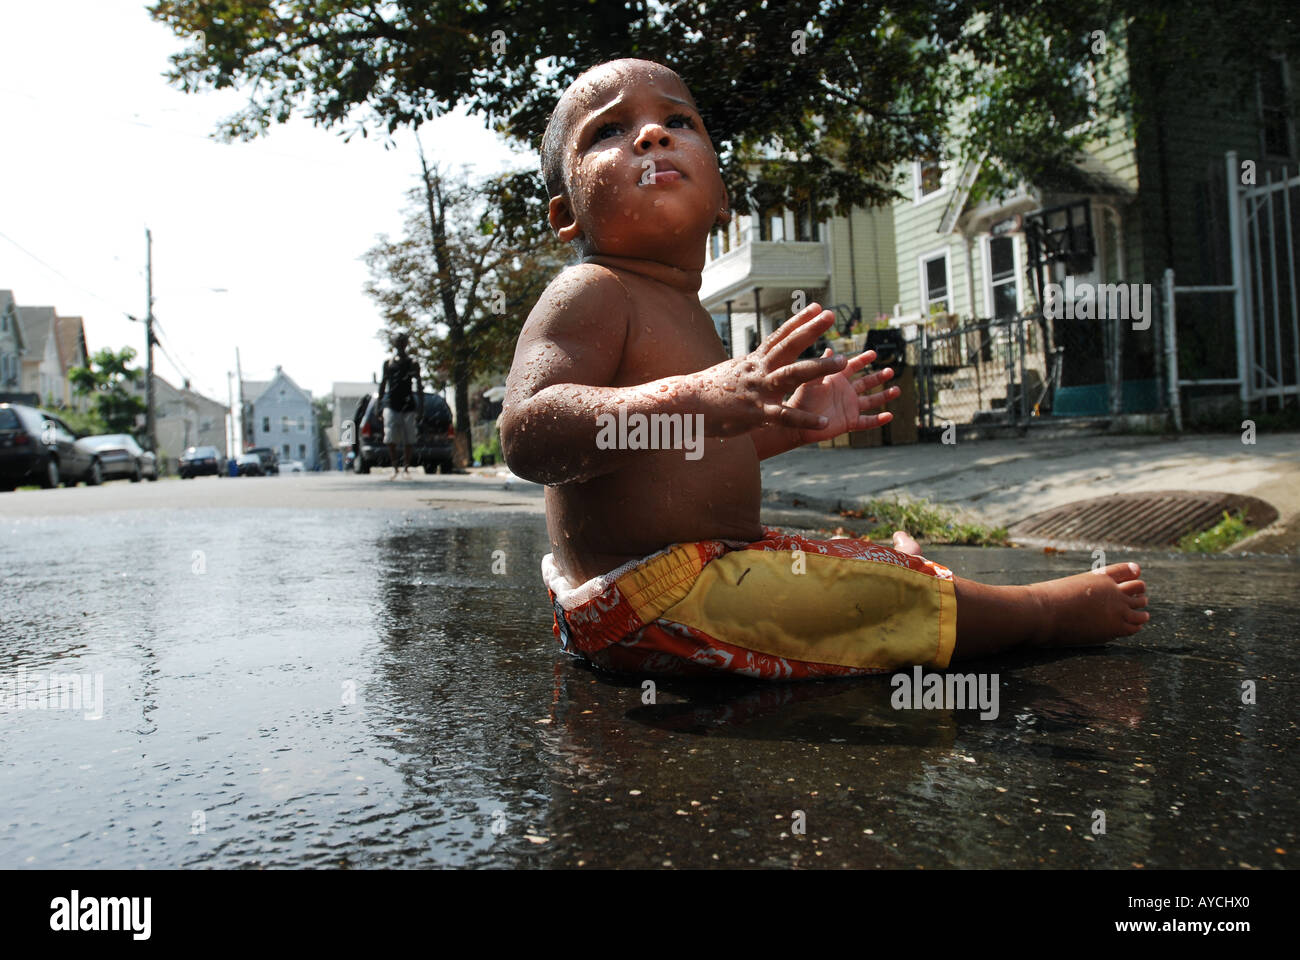 Child cooling off during summer heat wave in an urban city global warming concept - Stock Image